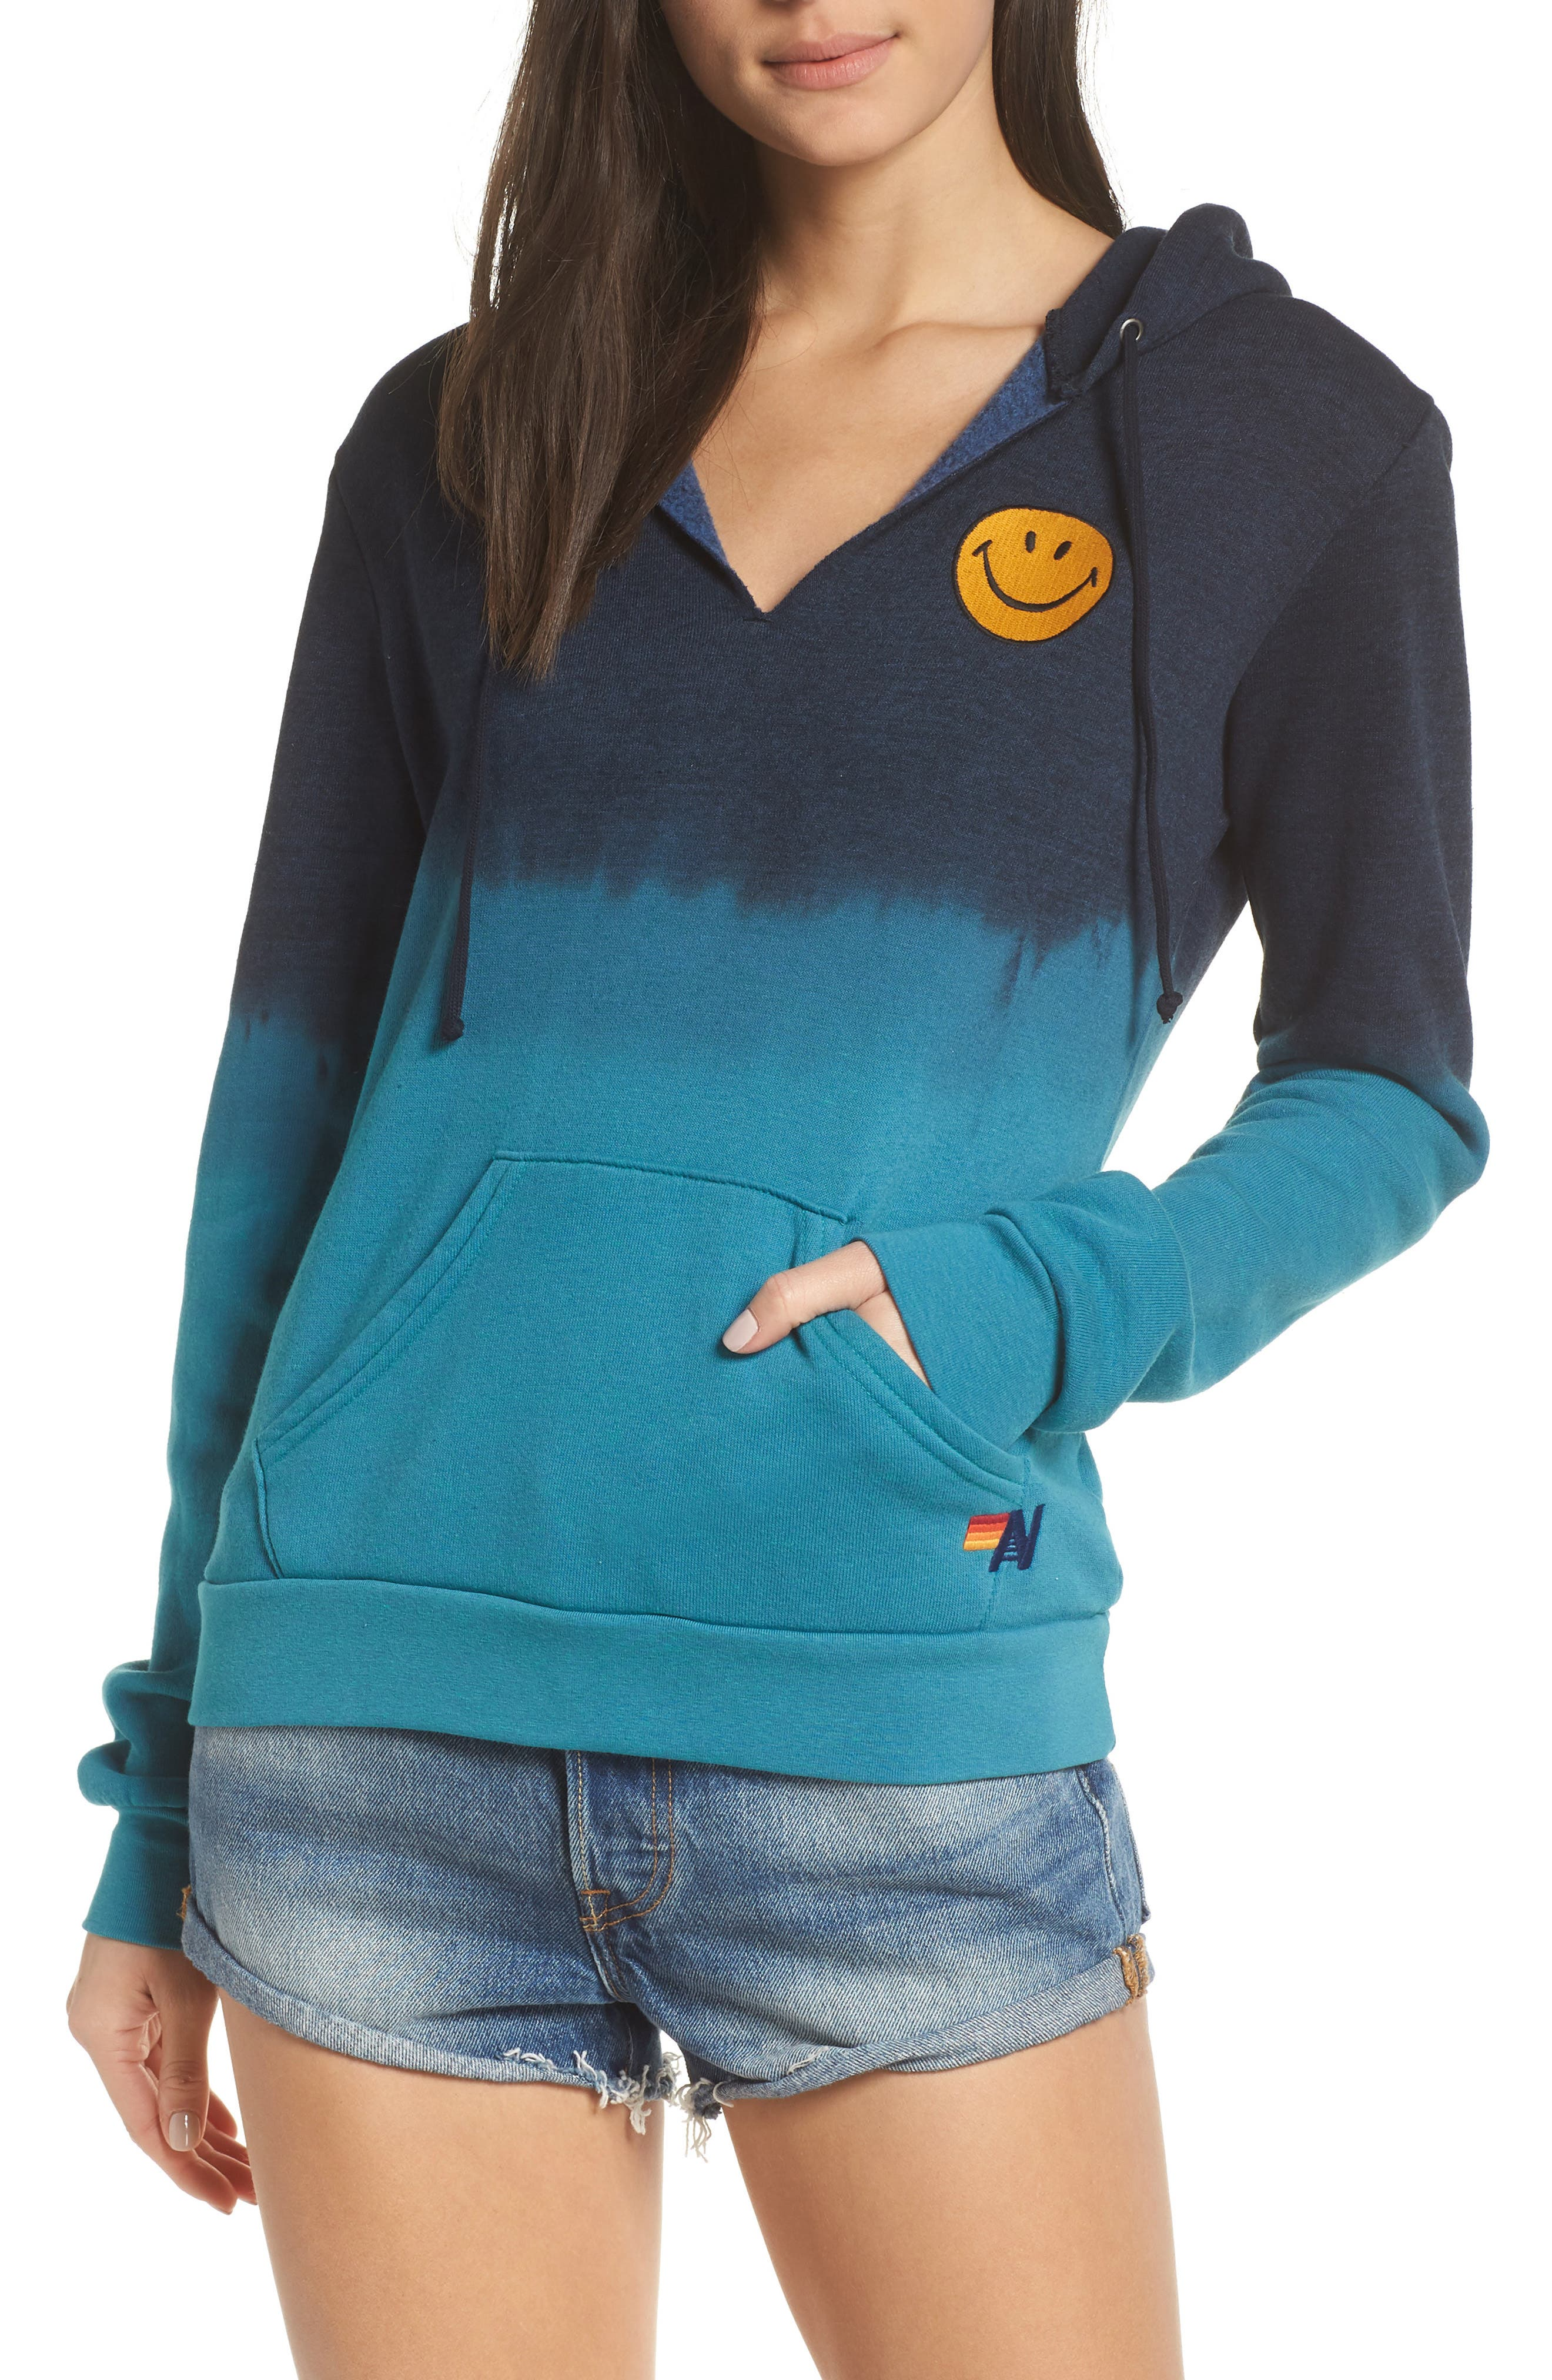 AVIATOR NATION Faded Smile Hoodie in Teal/ Navy